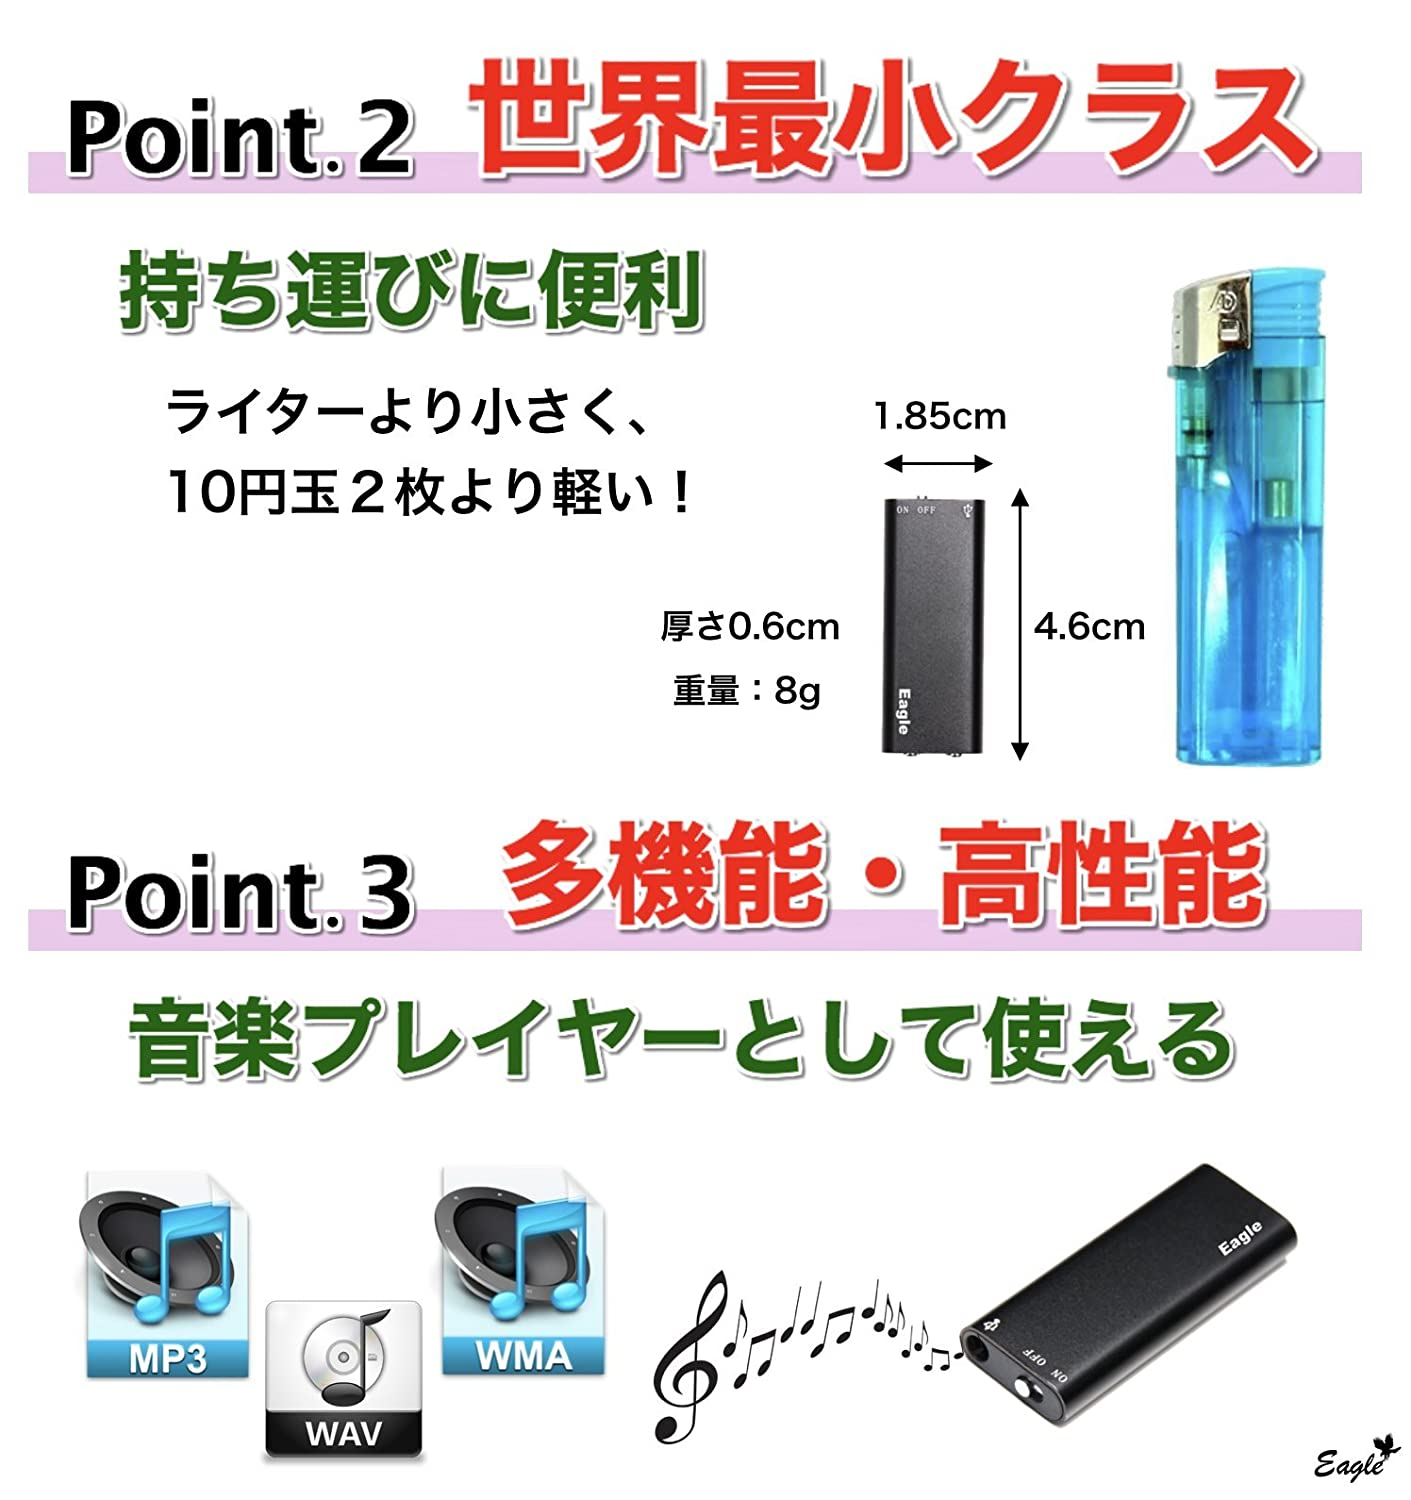 Amazon.com: 【Eagle】 World\'s Smallest Class IC Voice Recorder with ...